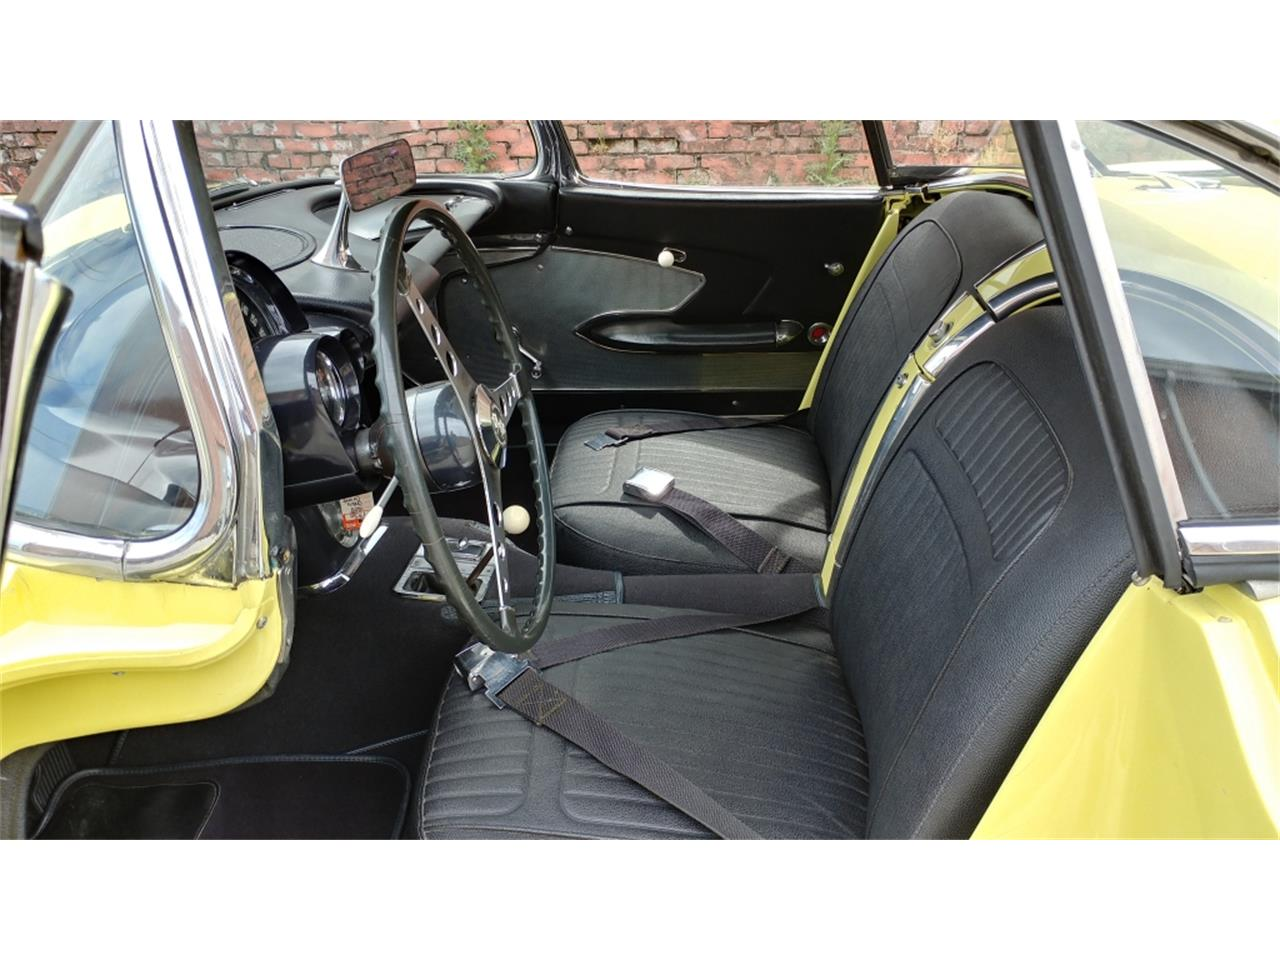 Large Picture of 1958 Chevrolet Corvette located in N. Kansas City Missouri - $75,999.00 Offered by Vintage Vettes, LLC - MO26